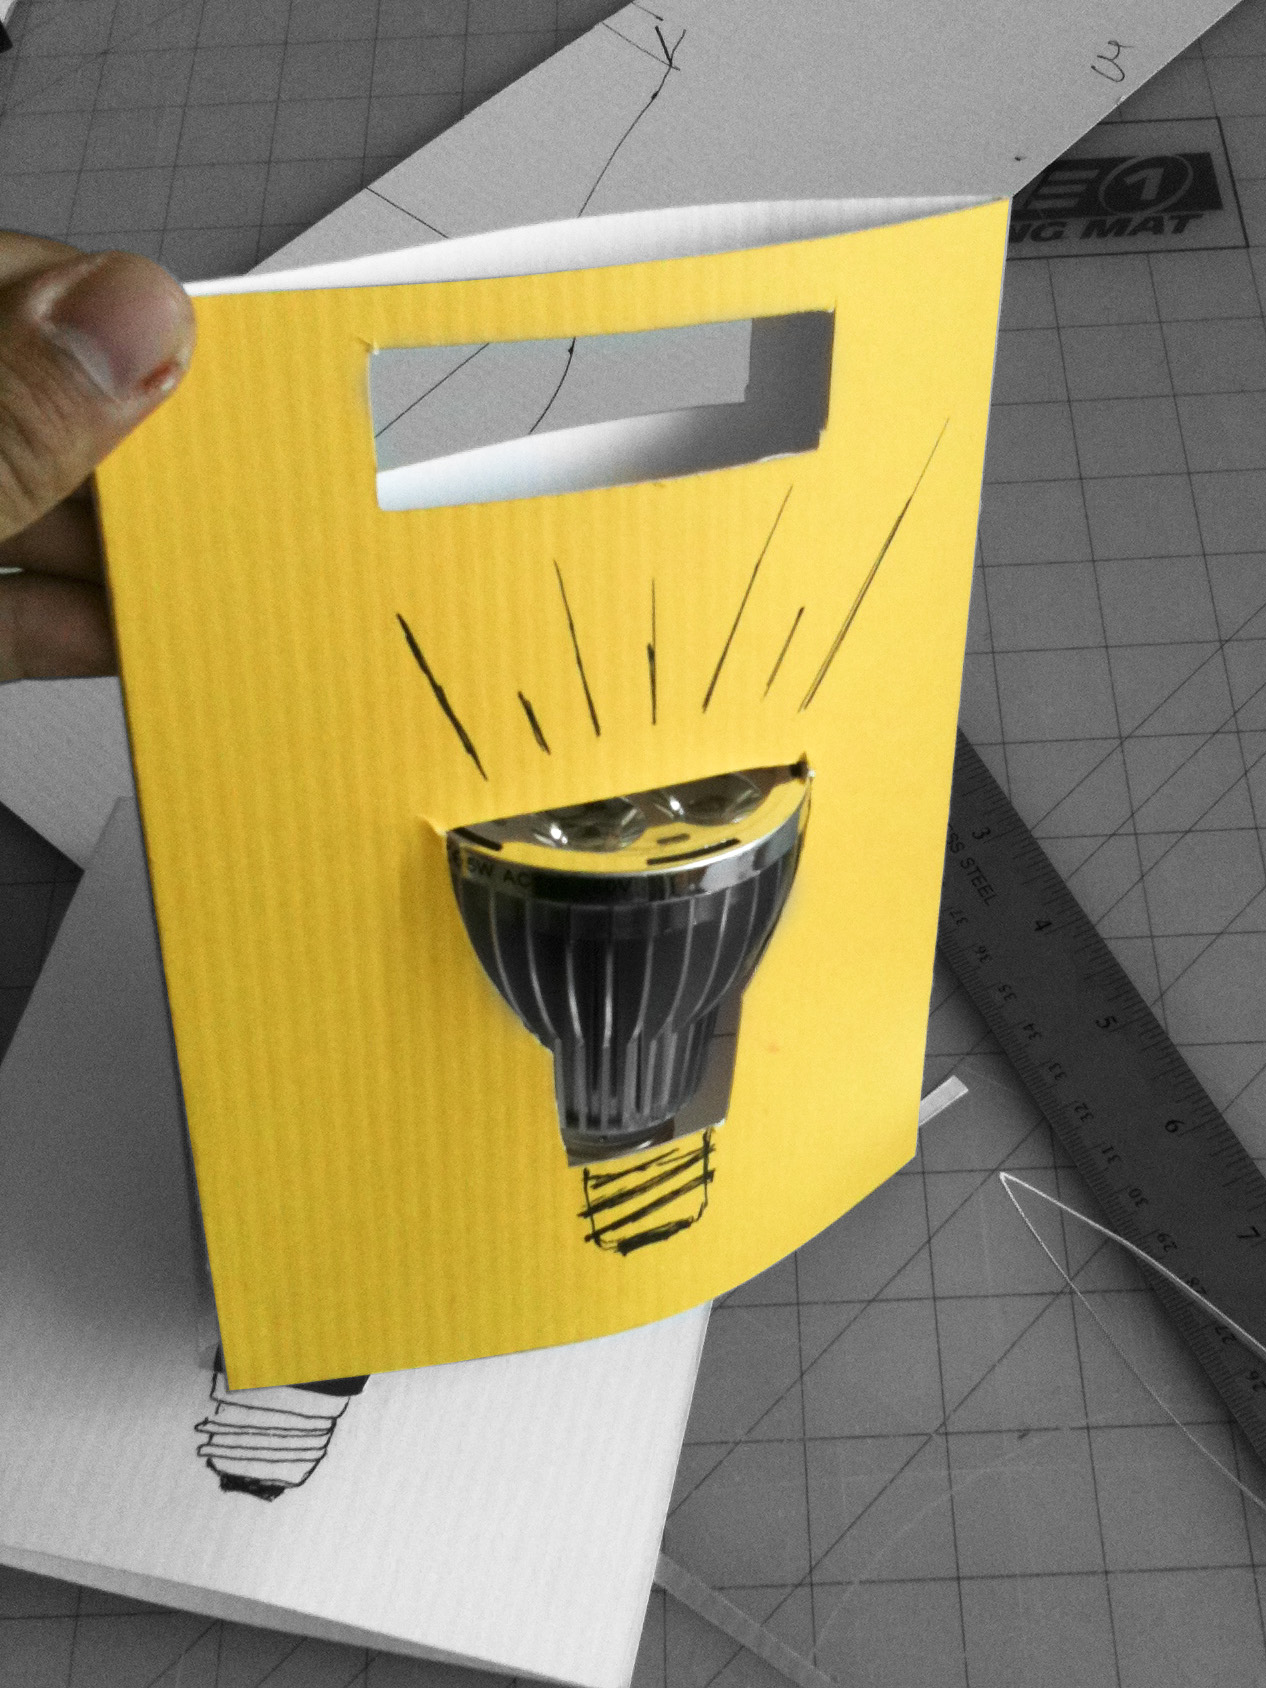 led-packaging-design-camilo-rojas-POW (5).jpg